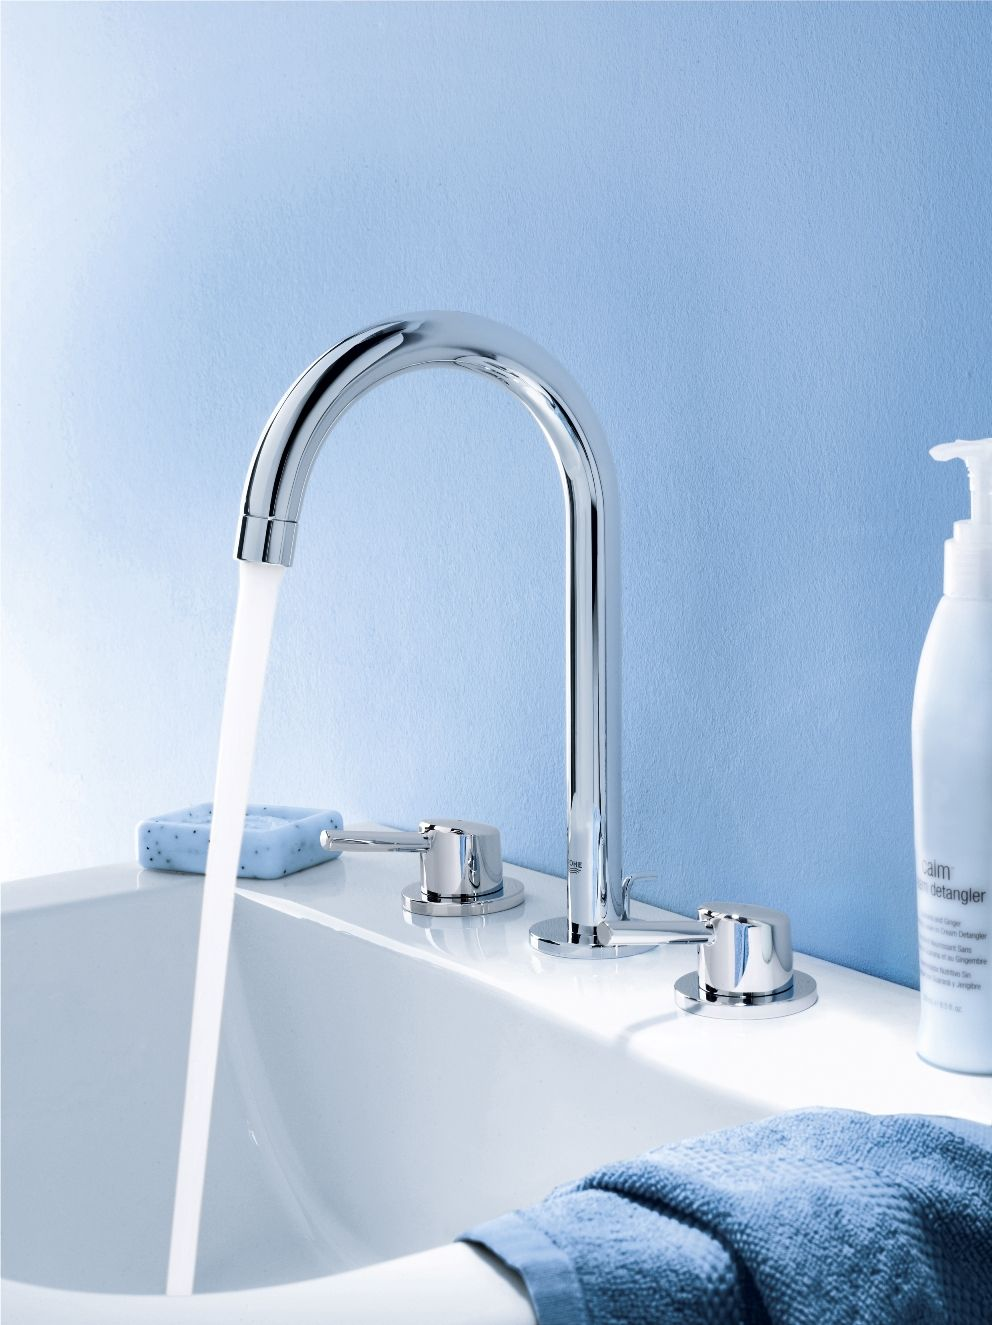 GROHE Concetto - 3 hole basin mixer | Bathroom Inspiration - Grohe ...